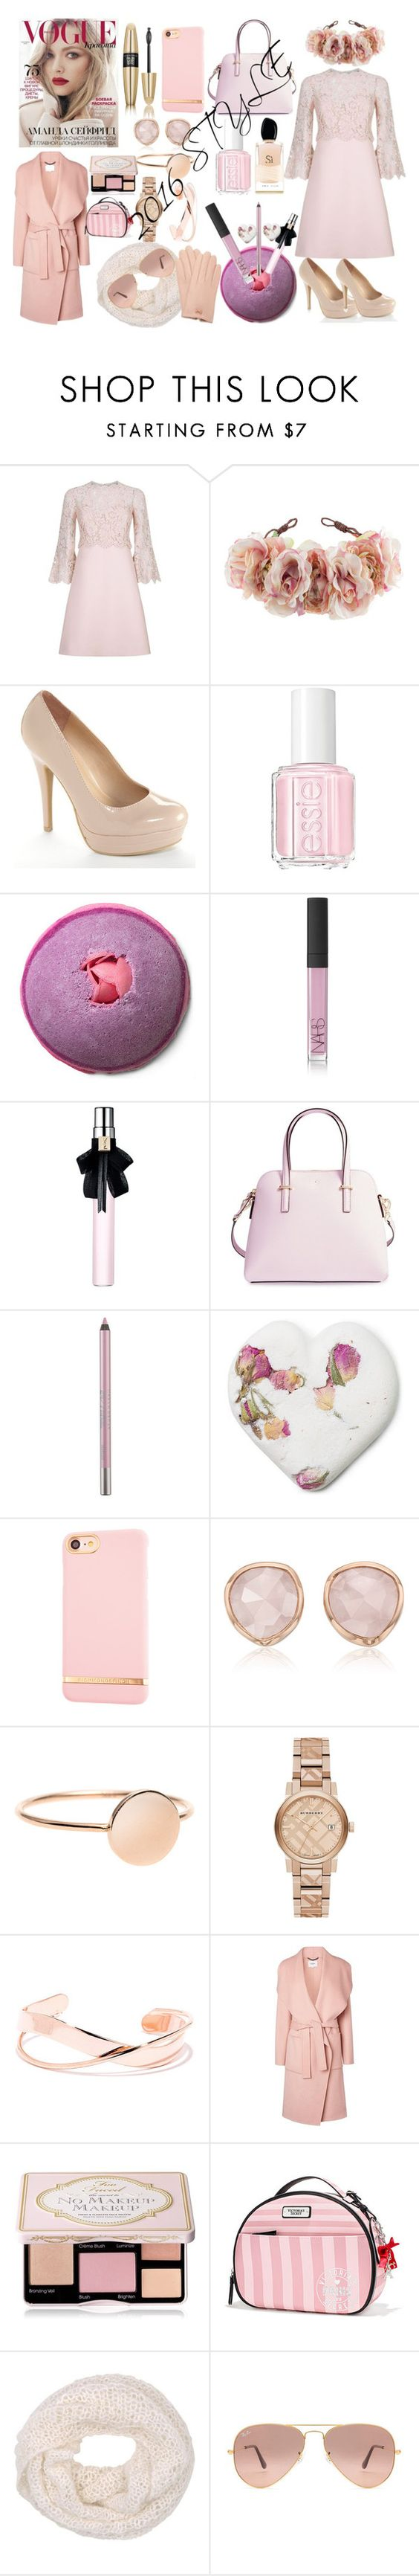 """""""The style of 2016"""" by colourlover24 ❤ liked on Polyvore featuring Valentino, Rock 'N Rose, LC Lauren Conrad, Essie, Giorgio Armani, NARS Cosmetics, Yves Saint Laurent, Kate Spade, Urban Decay and Richmond & Finch"""